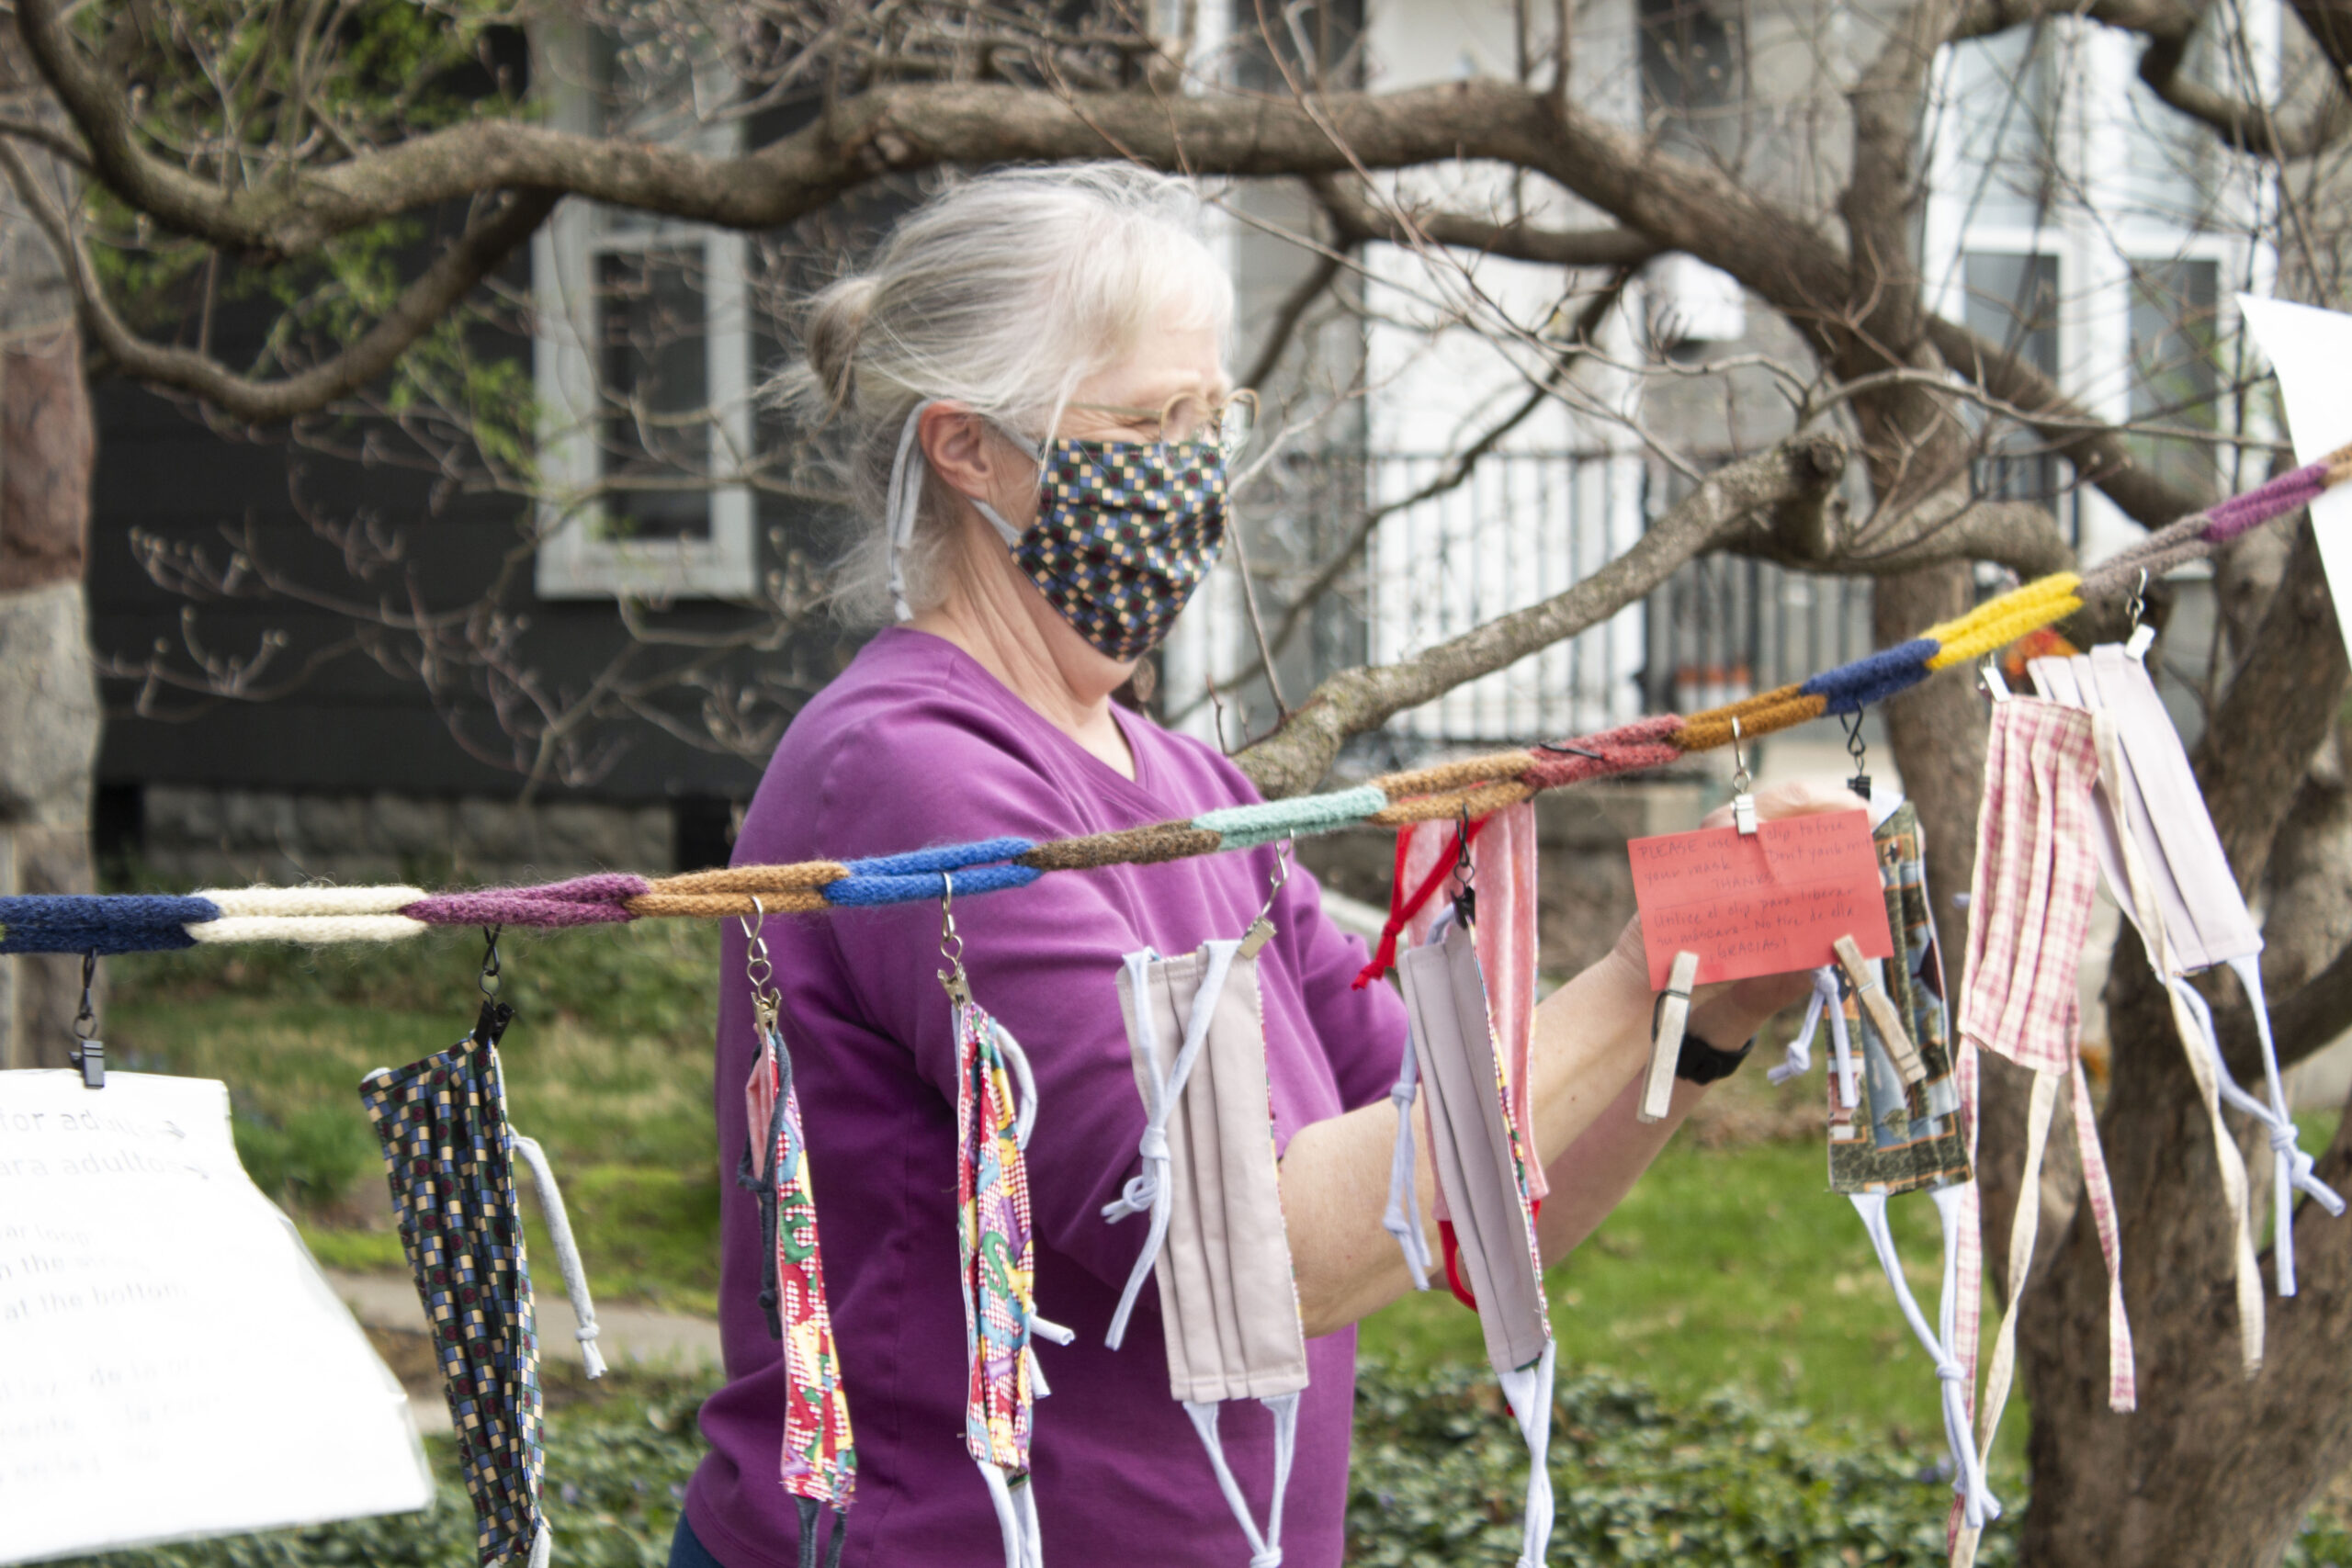 Barbara Gingerich hangs handmade masks on the communal clothesline outside her house